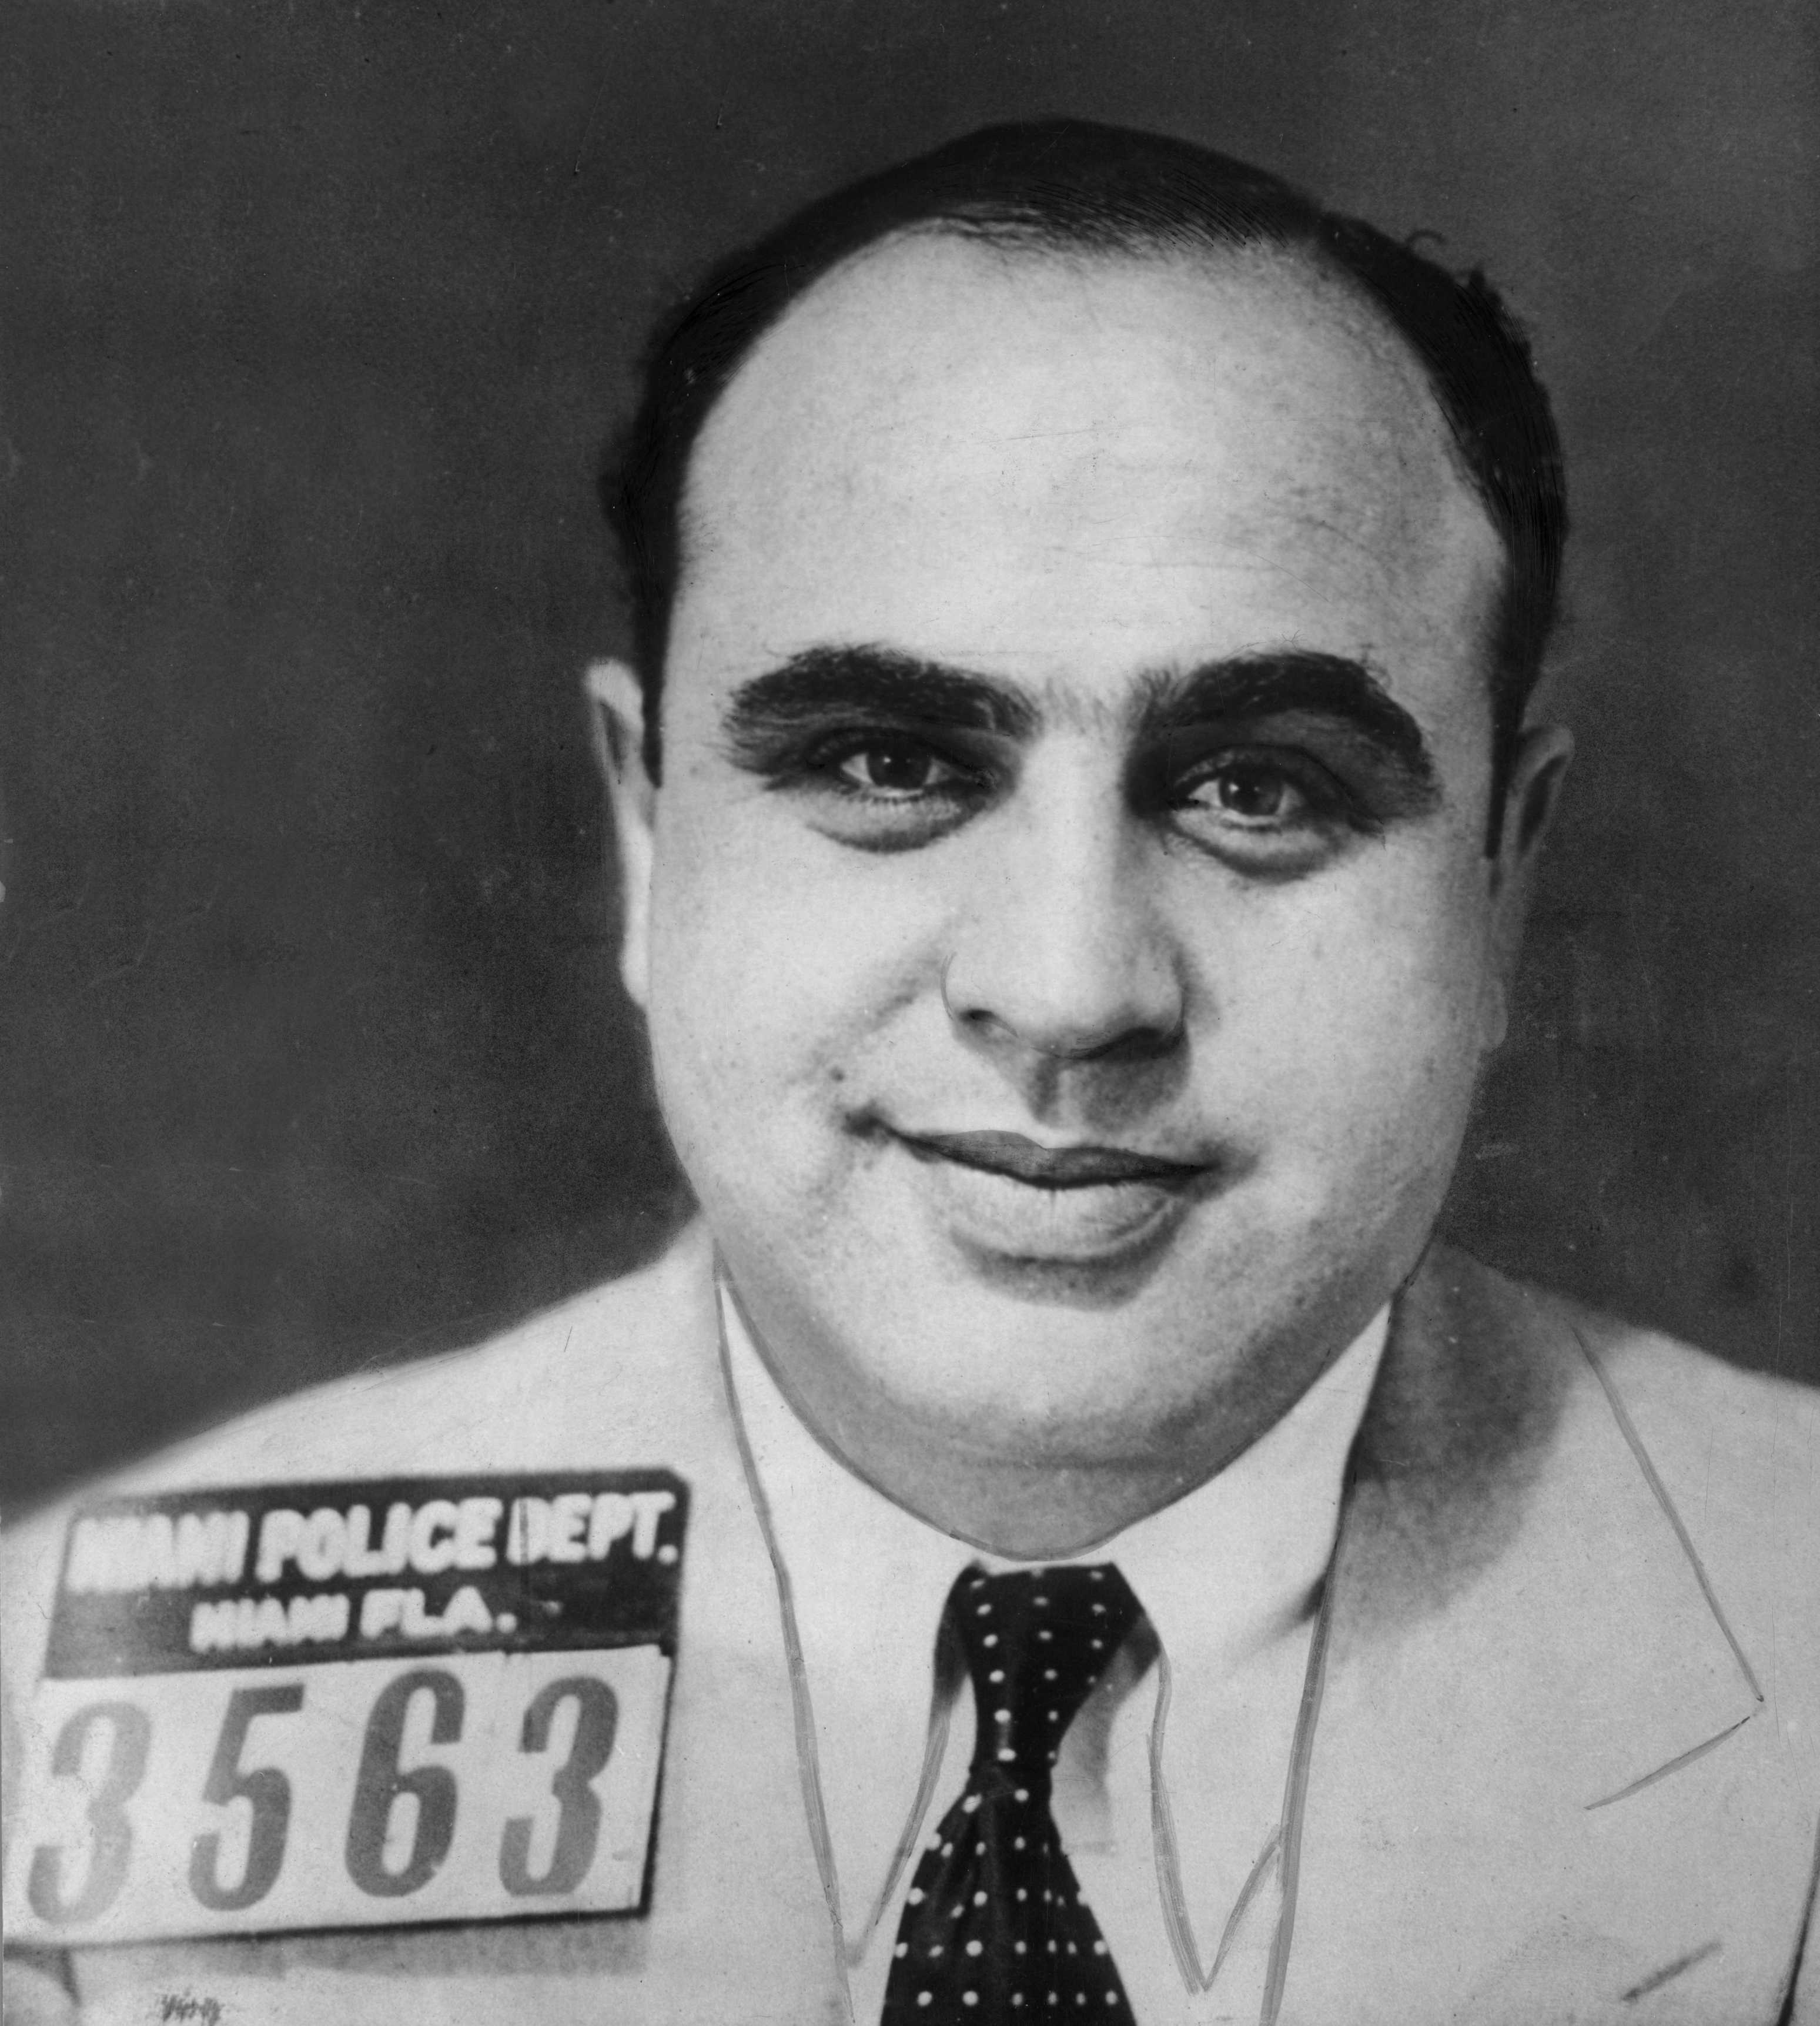 American gangster Al Capone smiles for a mugshot while wearing a jacket and tie in Miami, Florida.